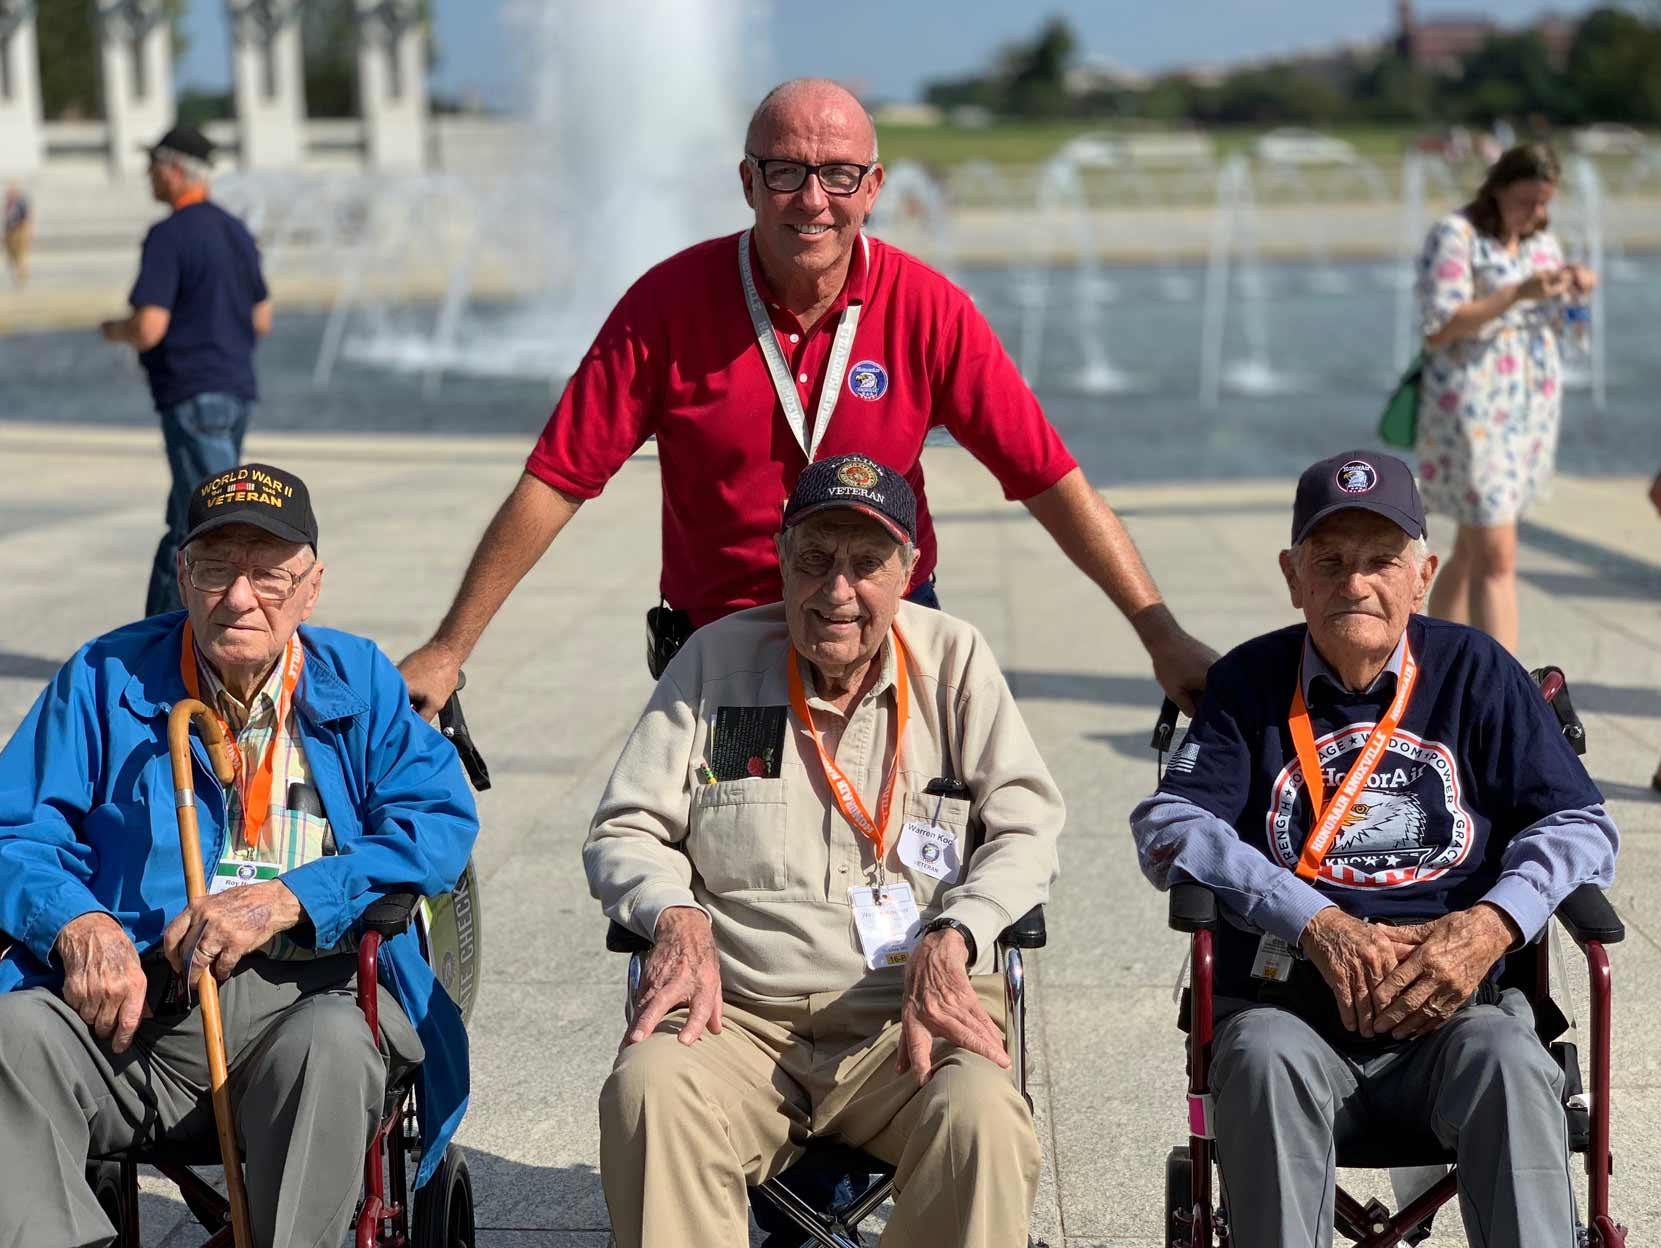 Eddie with WWII veterans in Washington, DC